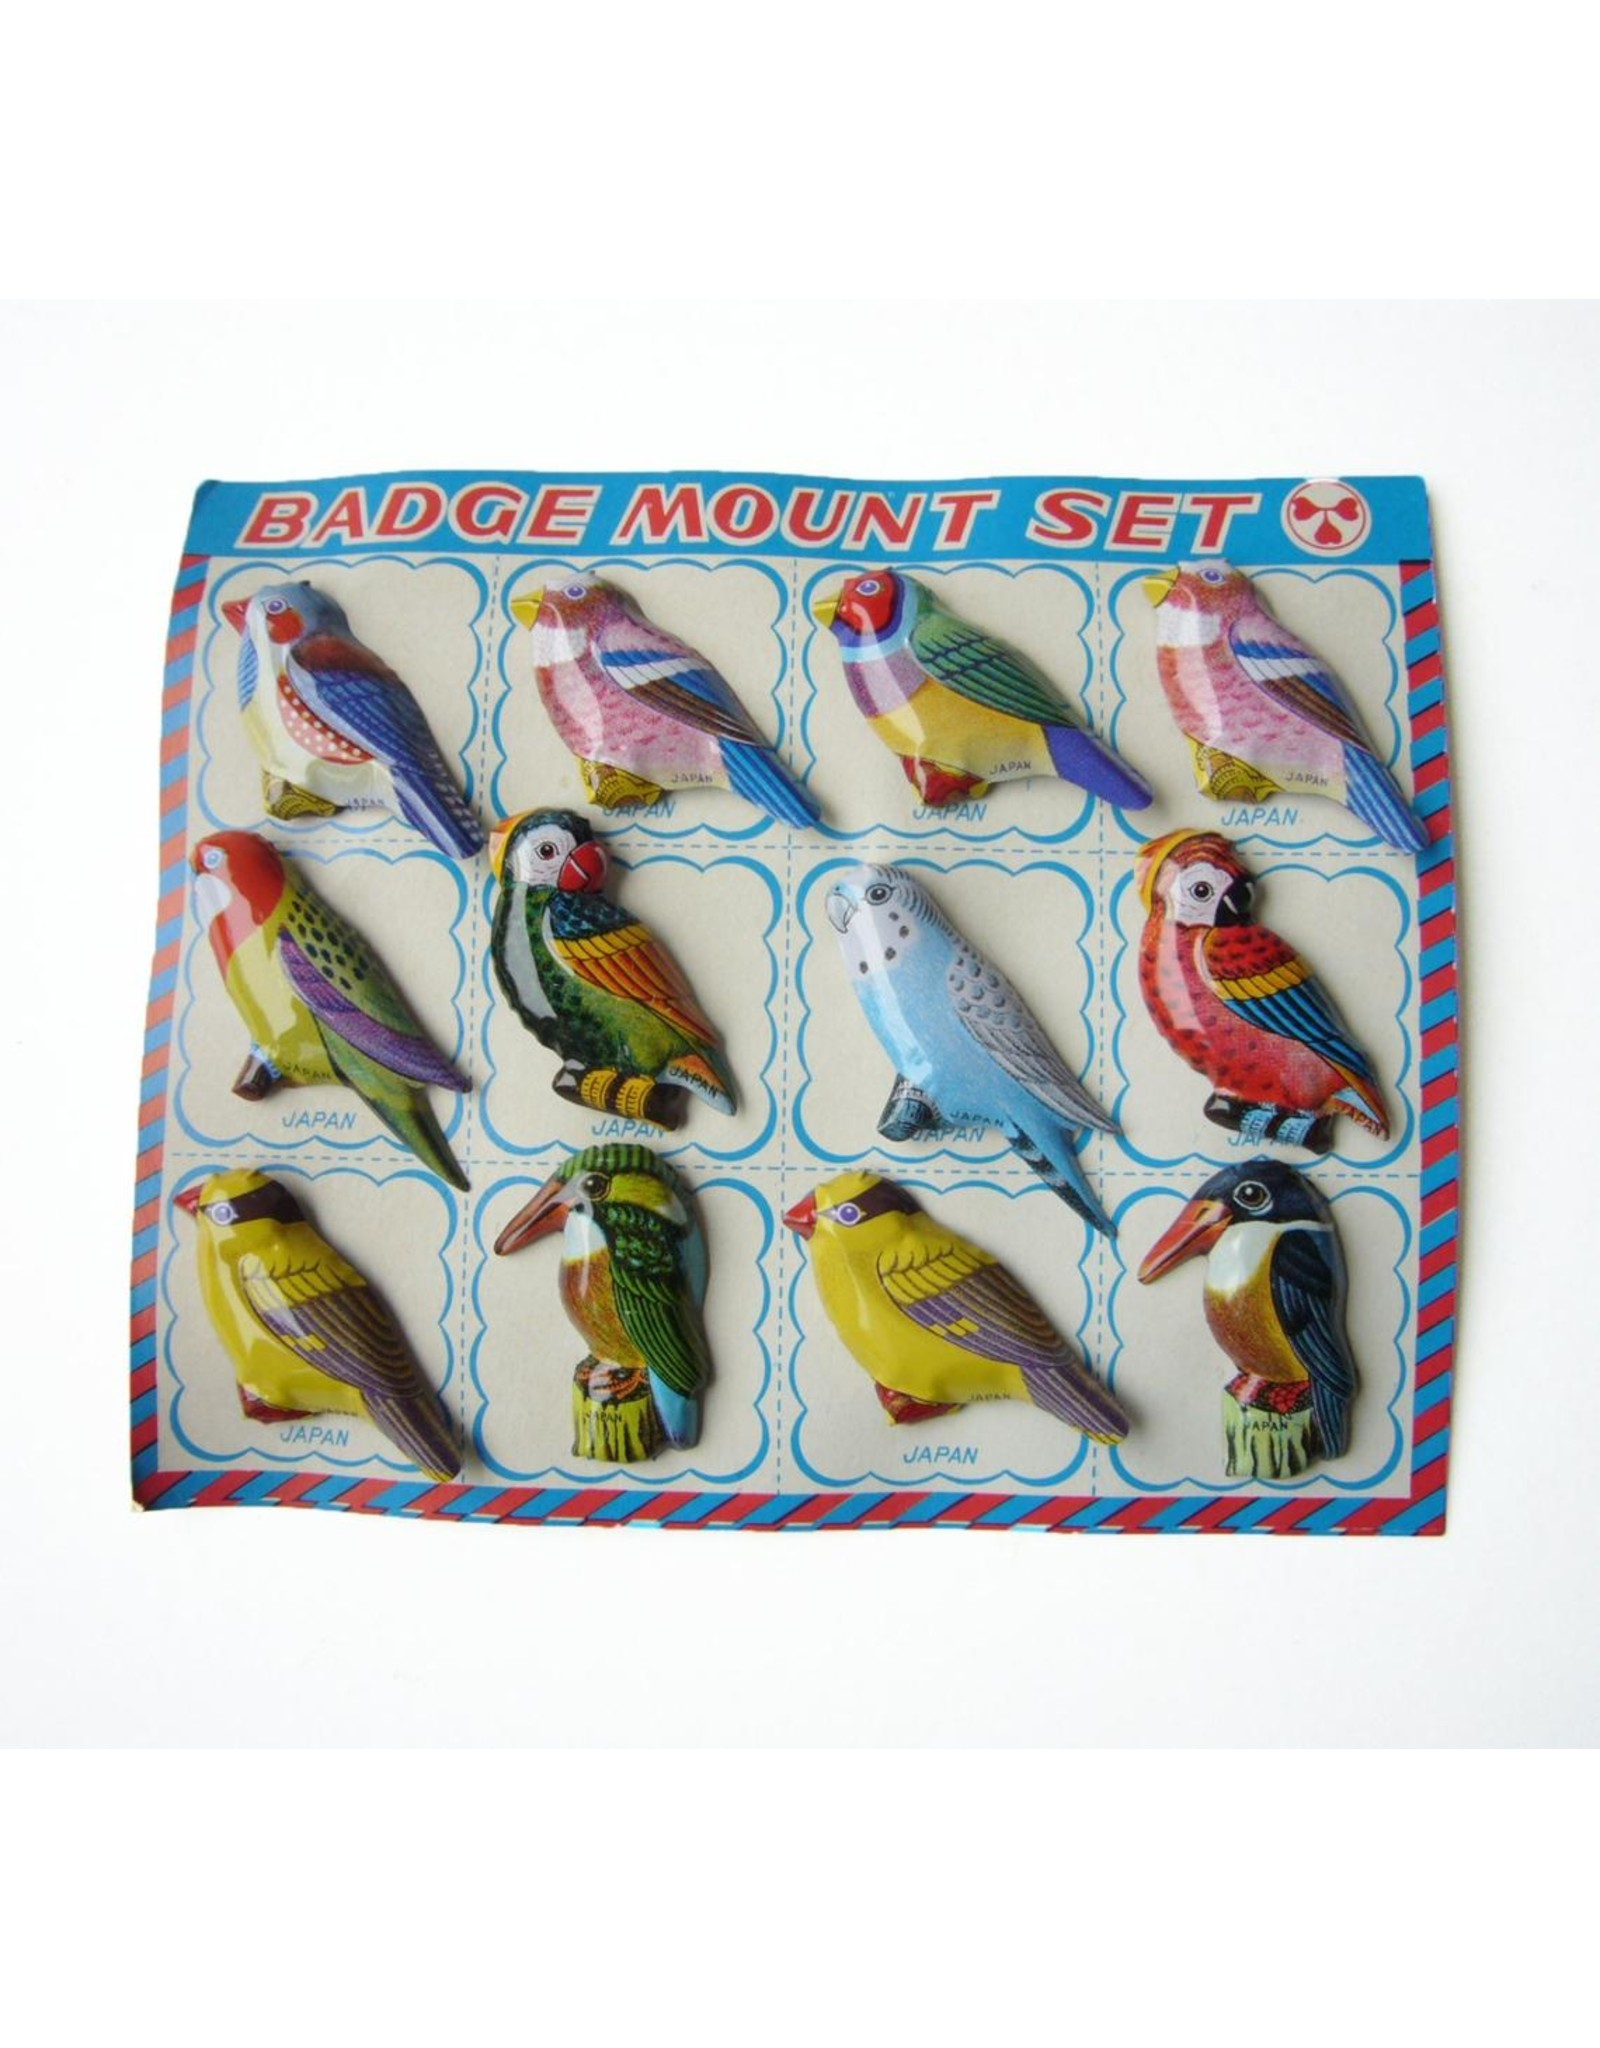 Vintage bird brooches (price for 12)